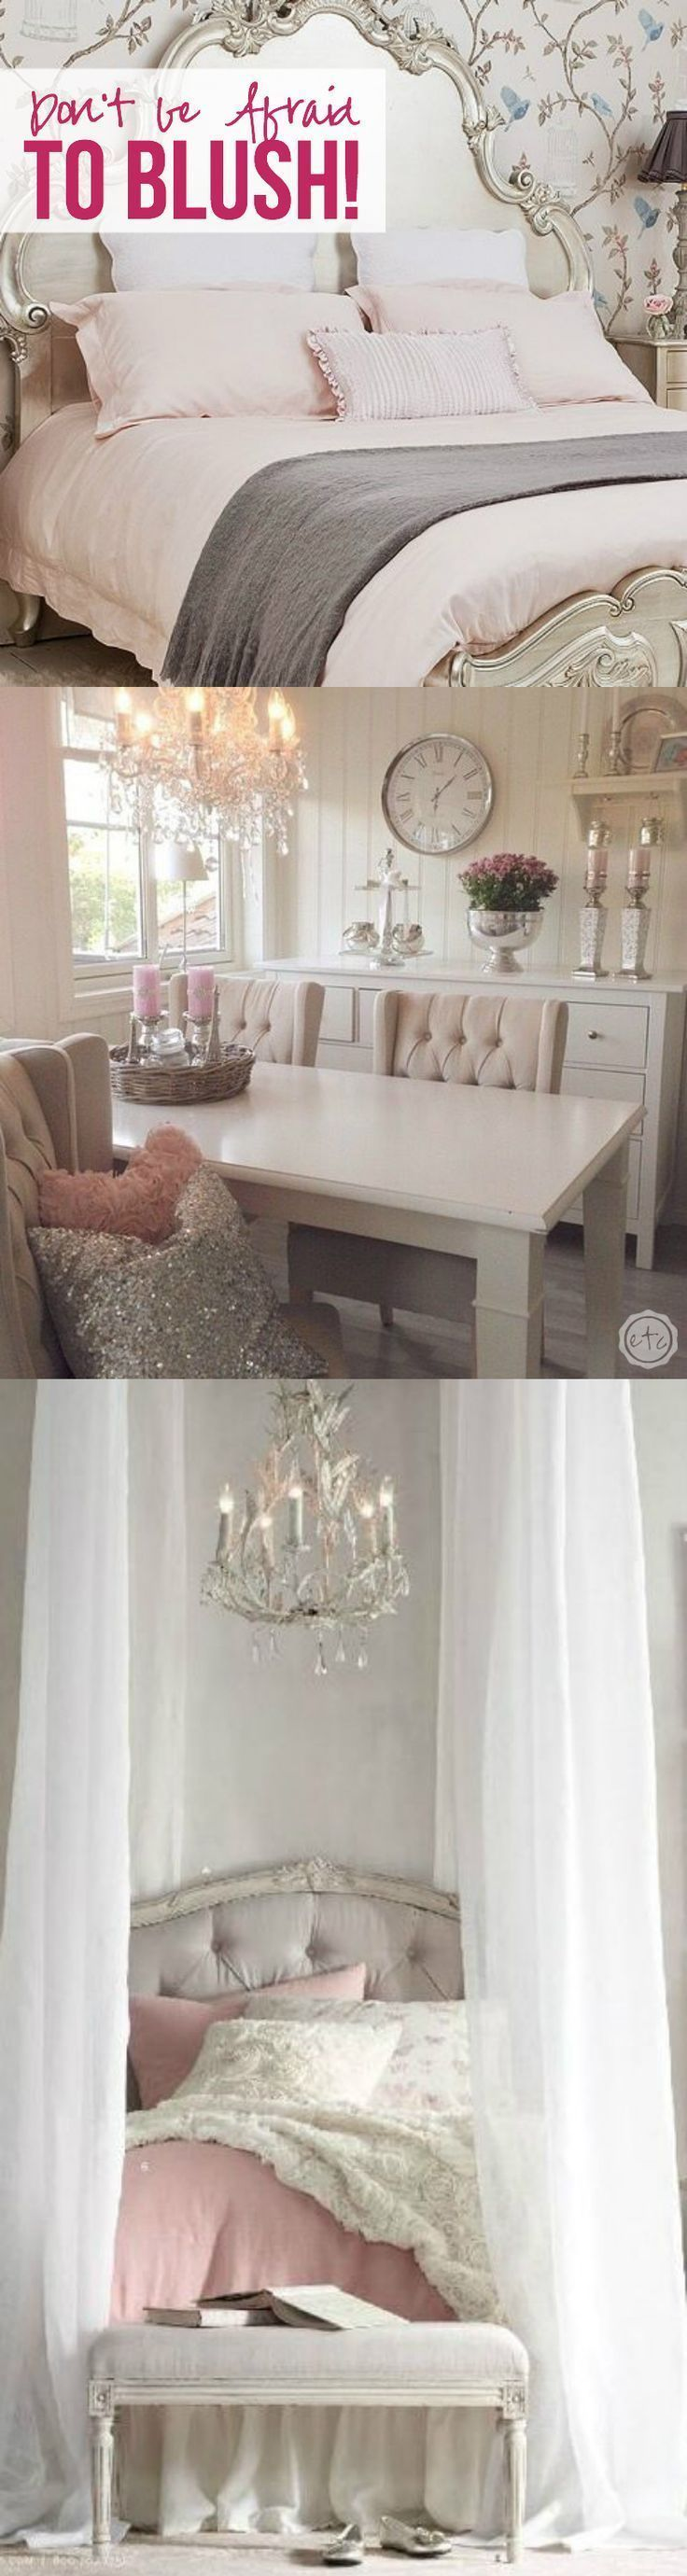 Romantic Master Bedroom Ideas On A Budget Shabby Chic